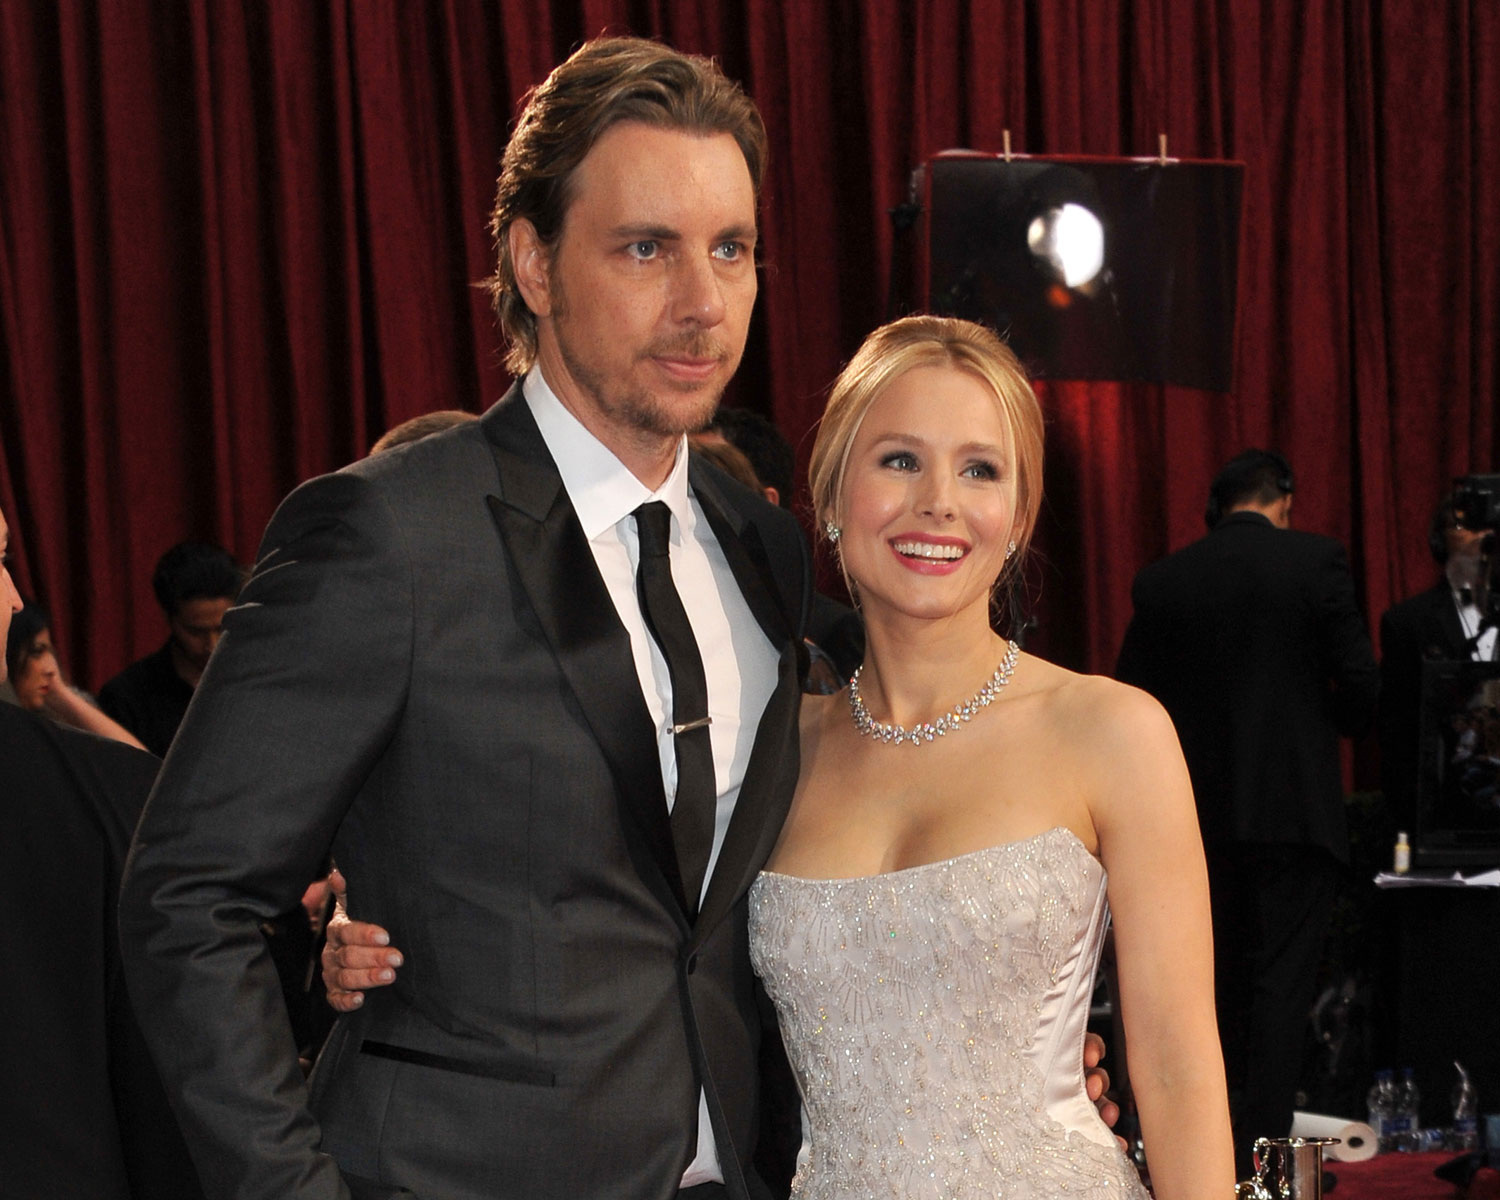 Exclusive: Kristen Bell and Dax Shepard Look Back at Their Wedding and What They Would Register for Today